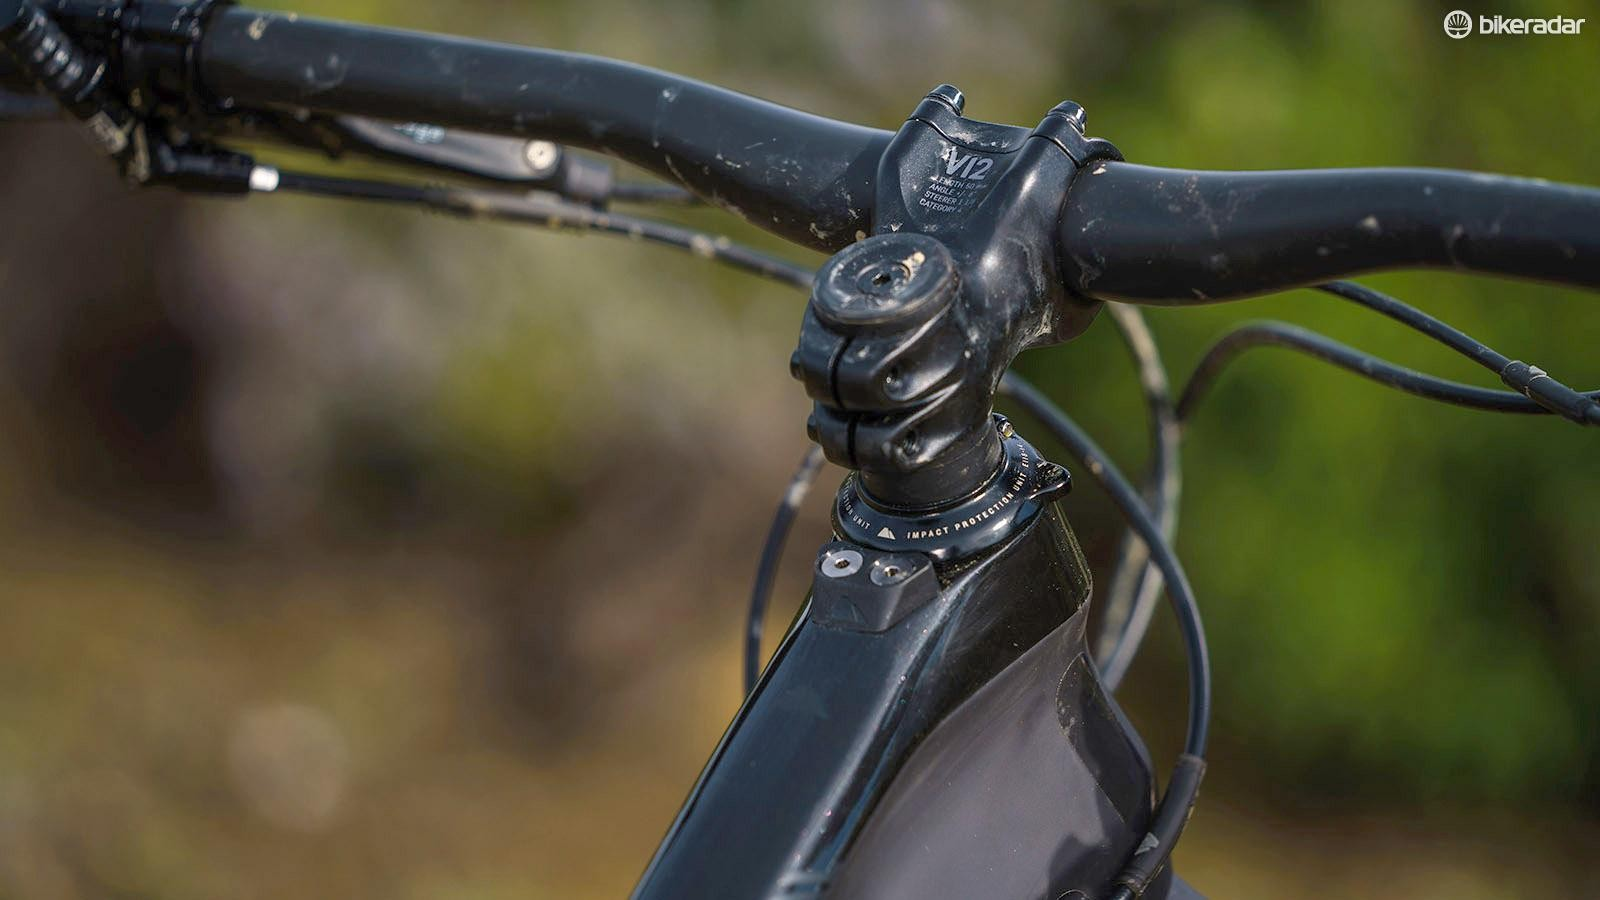 The bumper on top of the head tube prevents bars rotating far enough to damage the frame